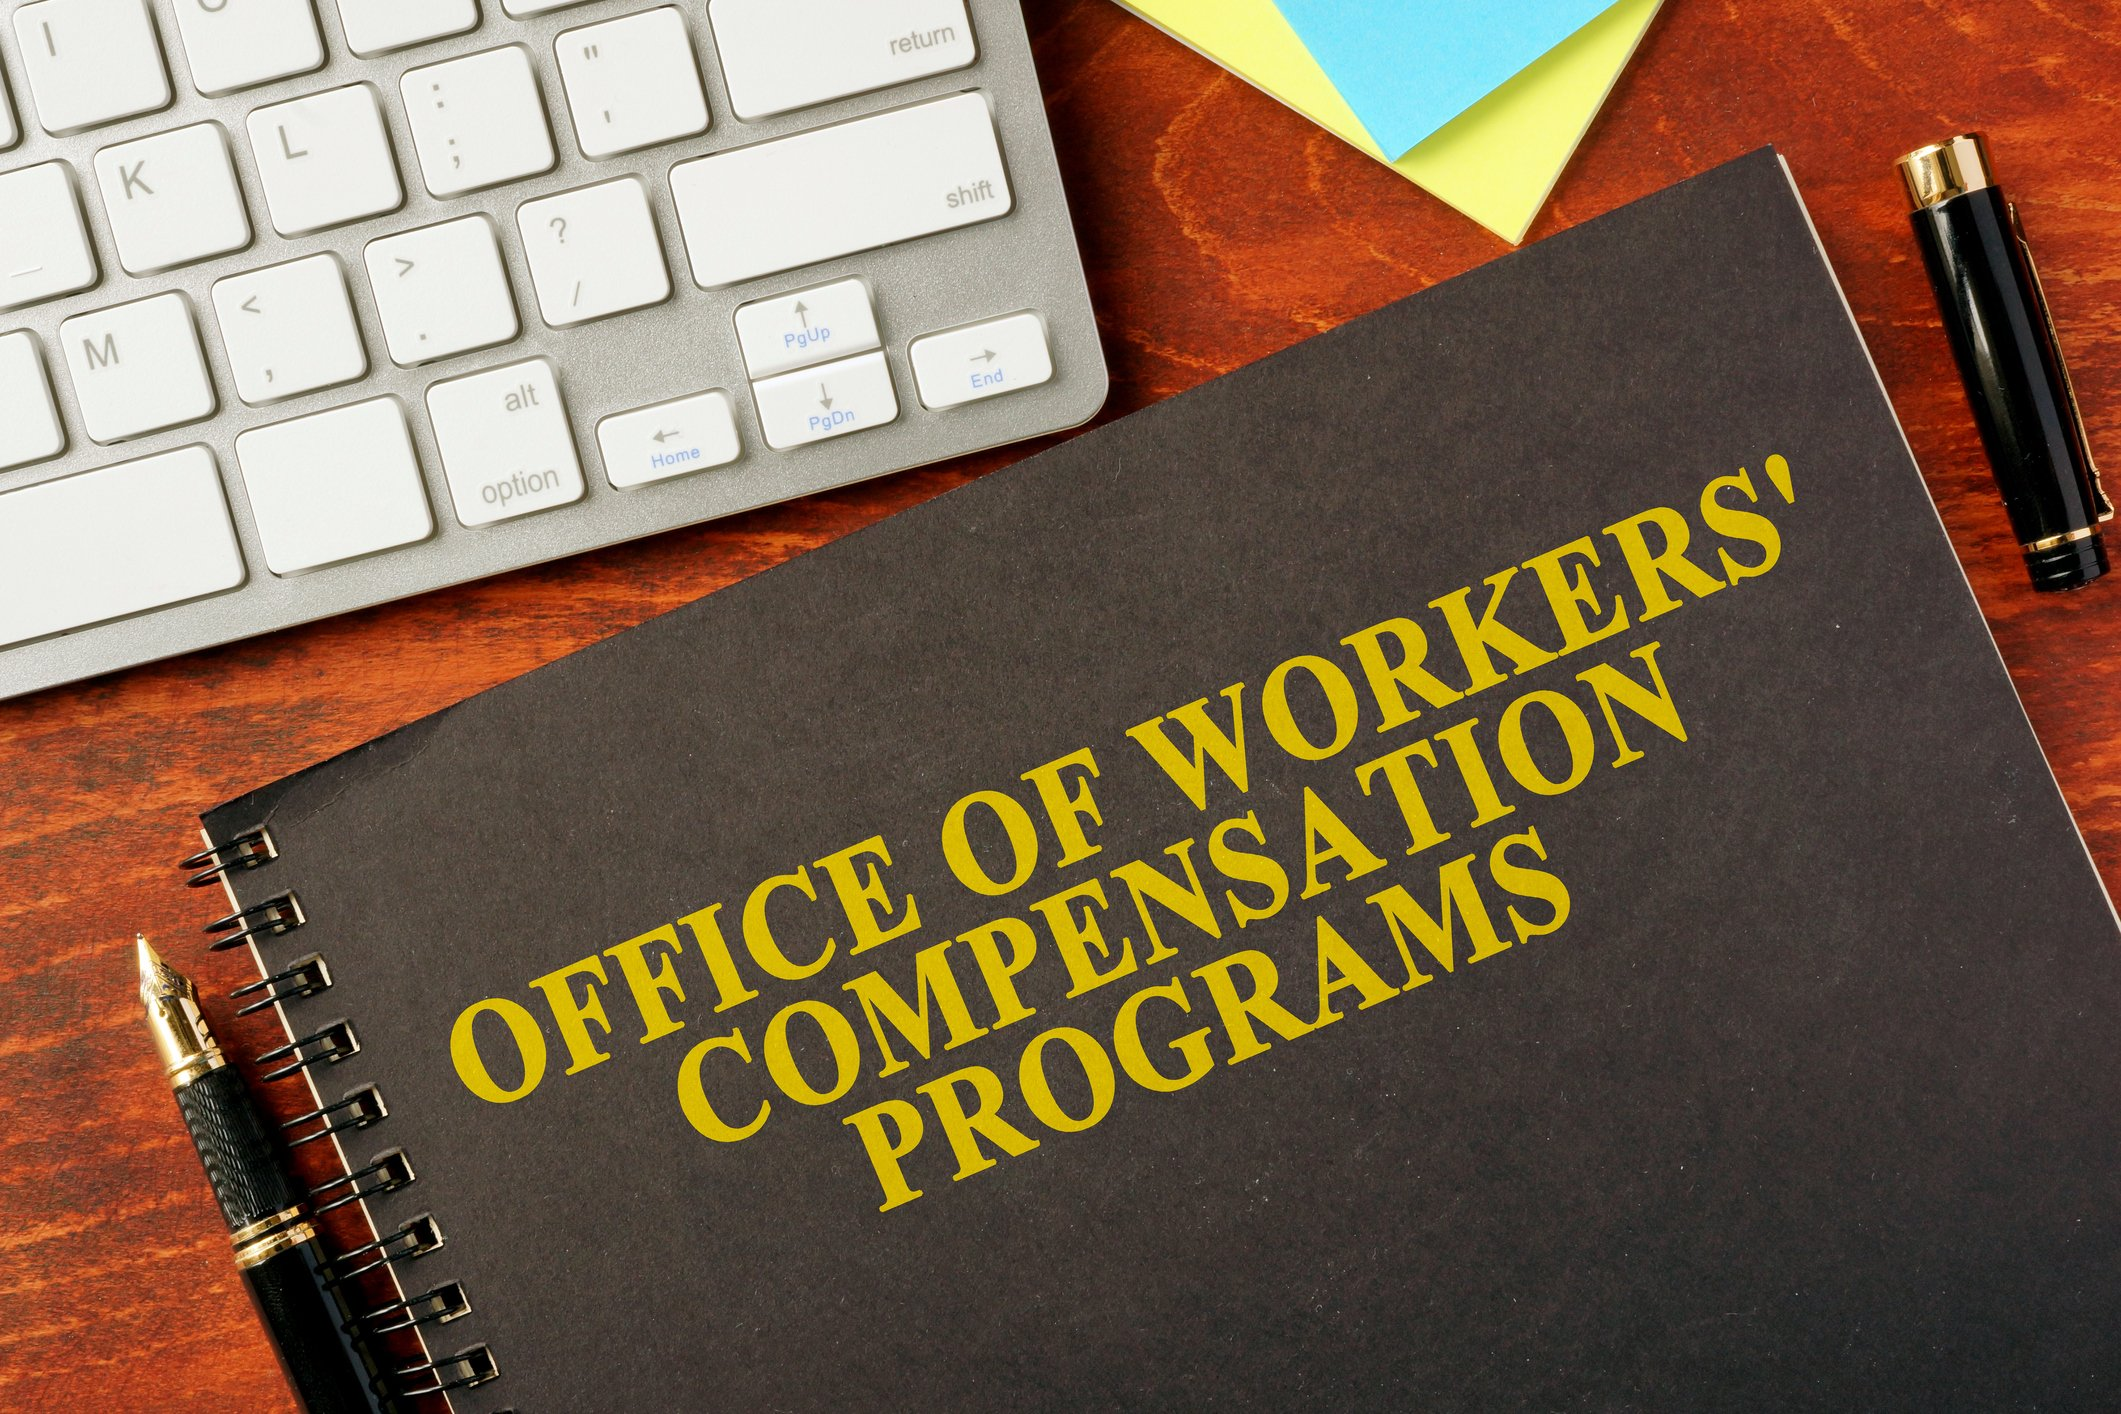 Office of Eugene workers compensation Attorneys